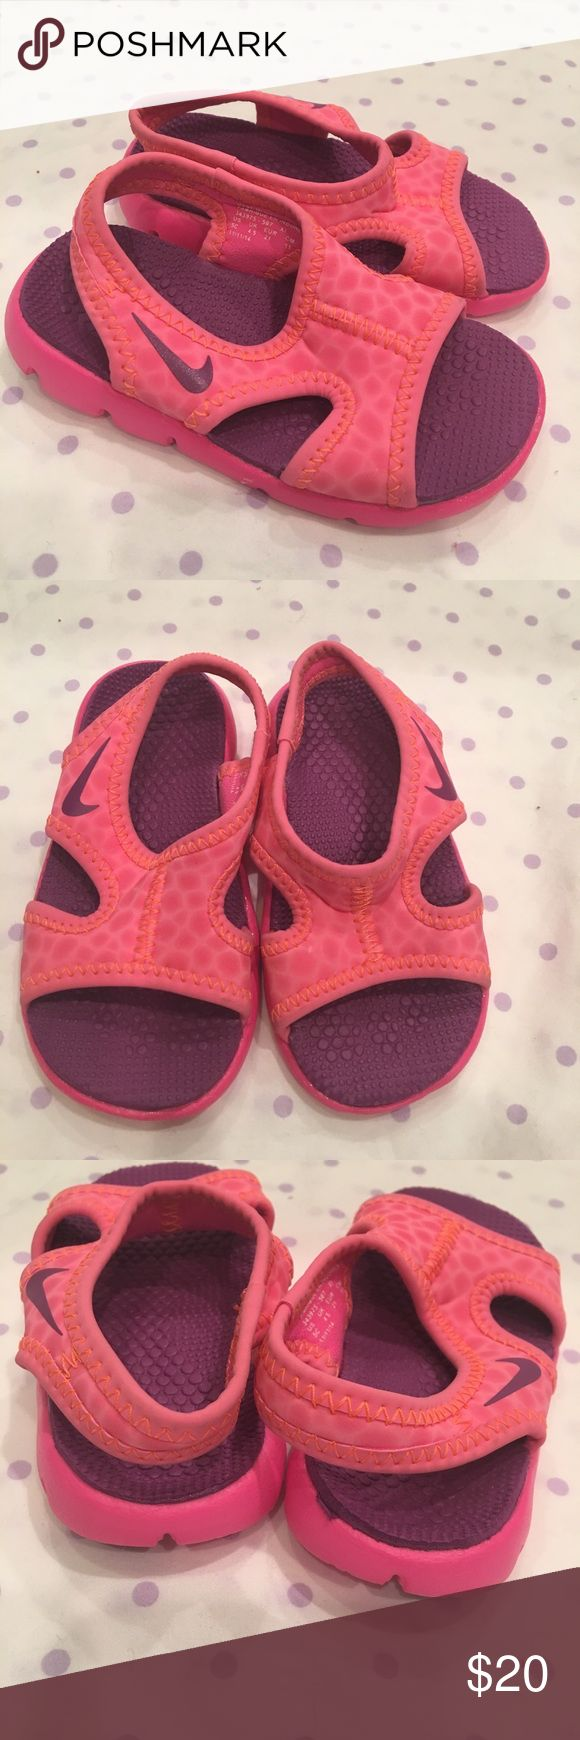 Nike Water Shoes Never worn water sandals. Size 5C Nike Shoes Water Shoes